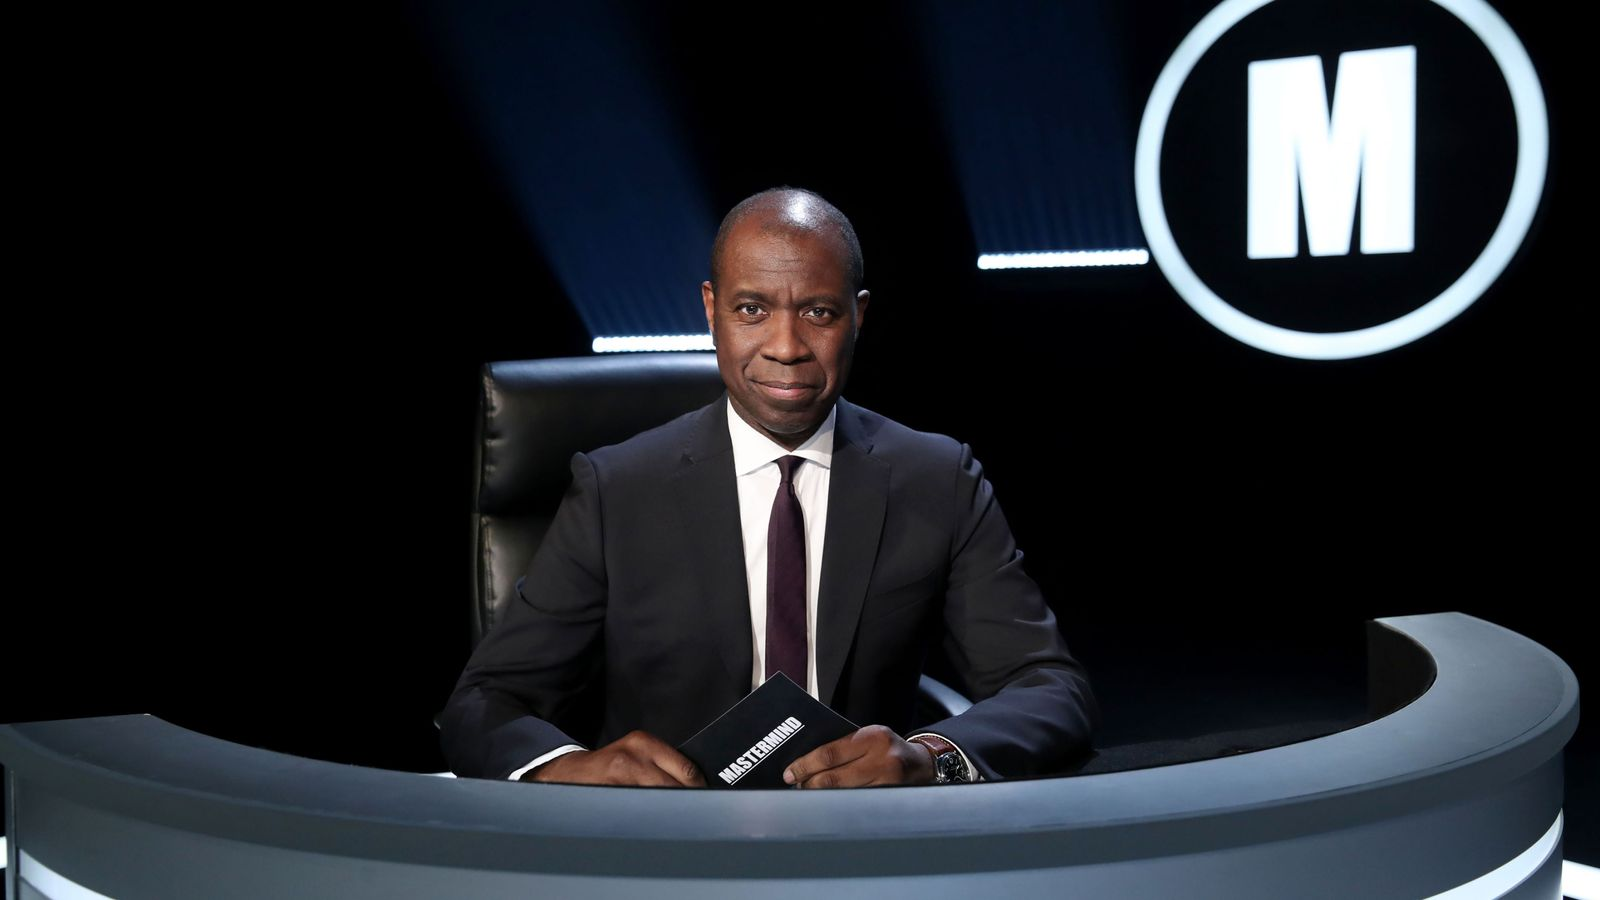 Mastermind's Clive Myrie says 'sad losers' behind racist abuse are 'jokes' as he takes over hit quiz show